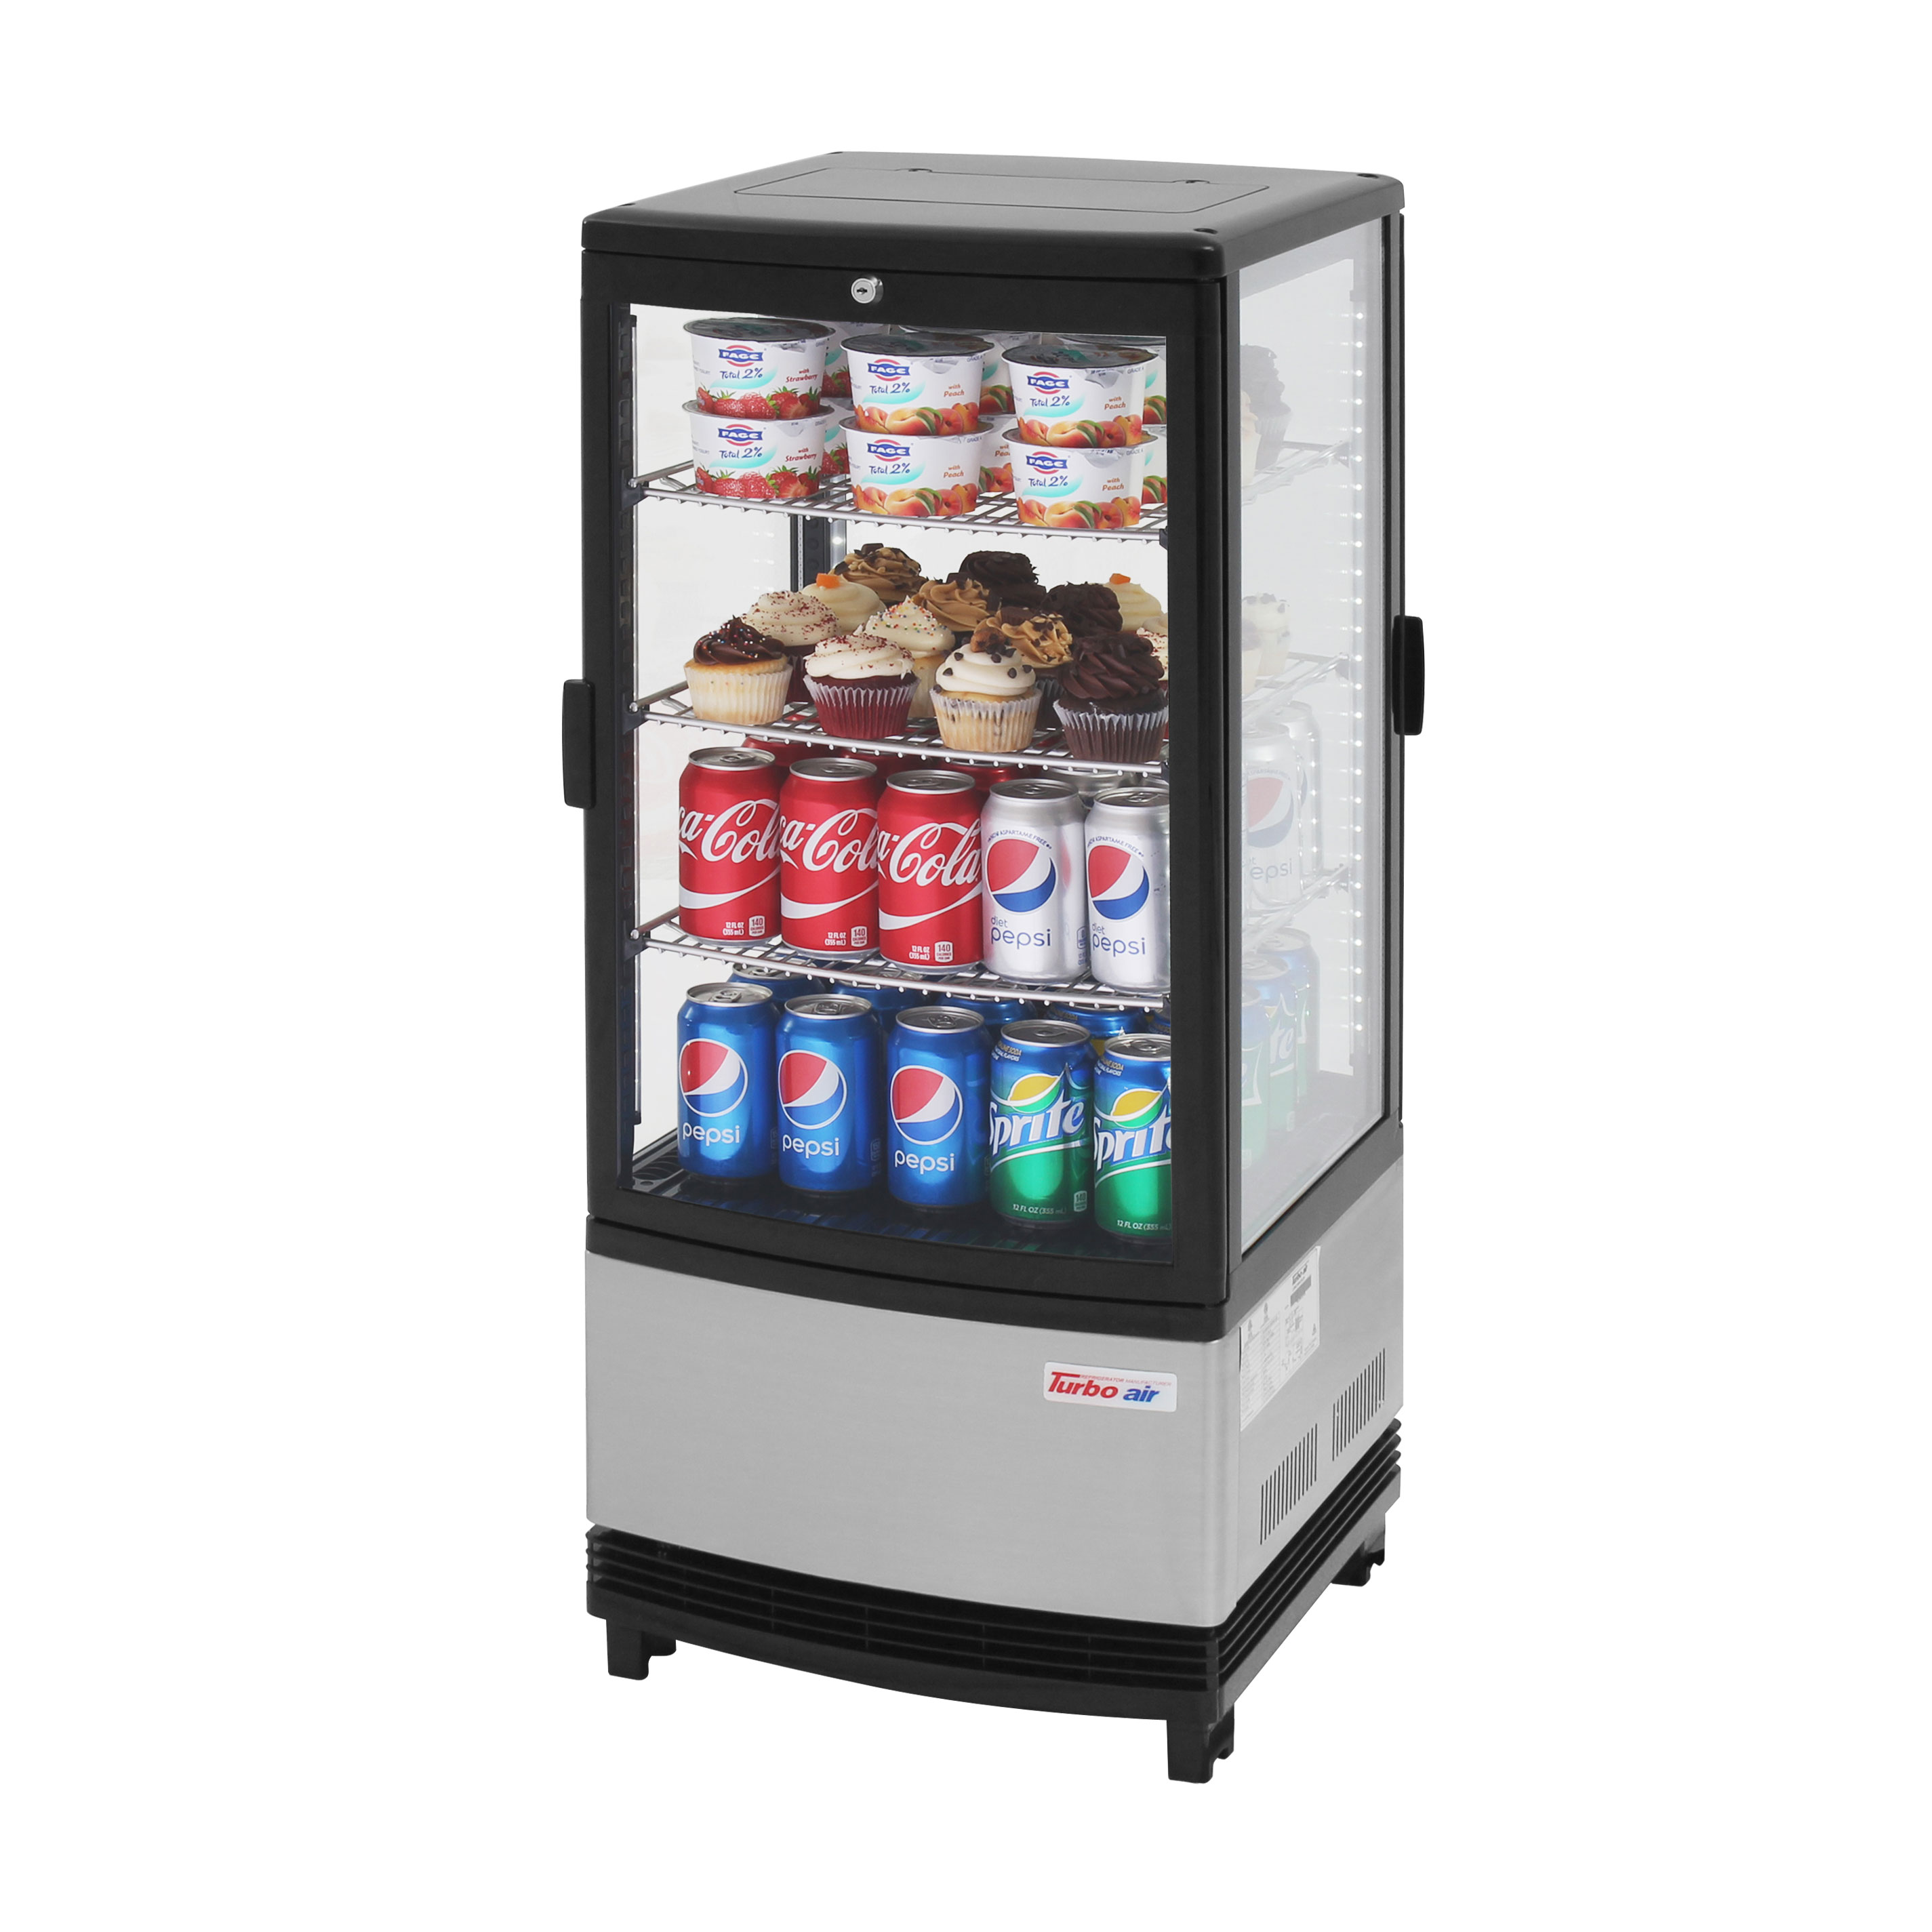 Turbo Air CRT-77-2R-N display case, refrigerated, countertop